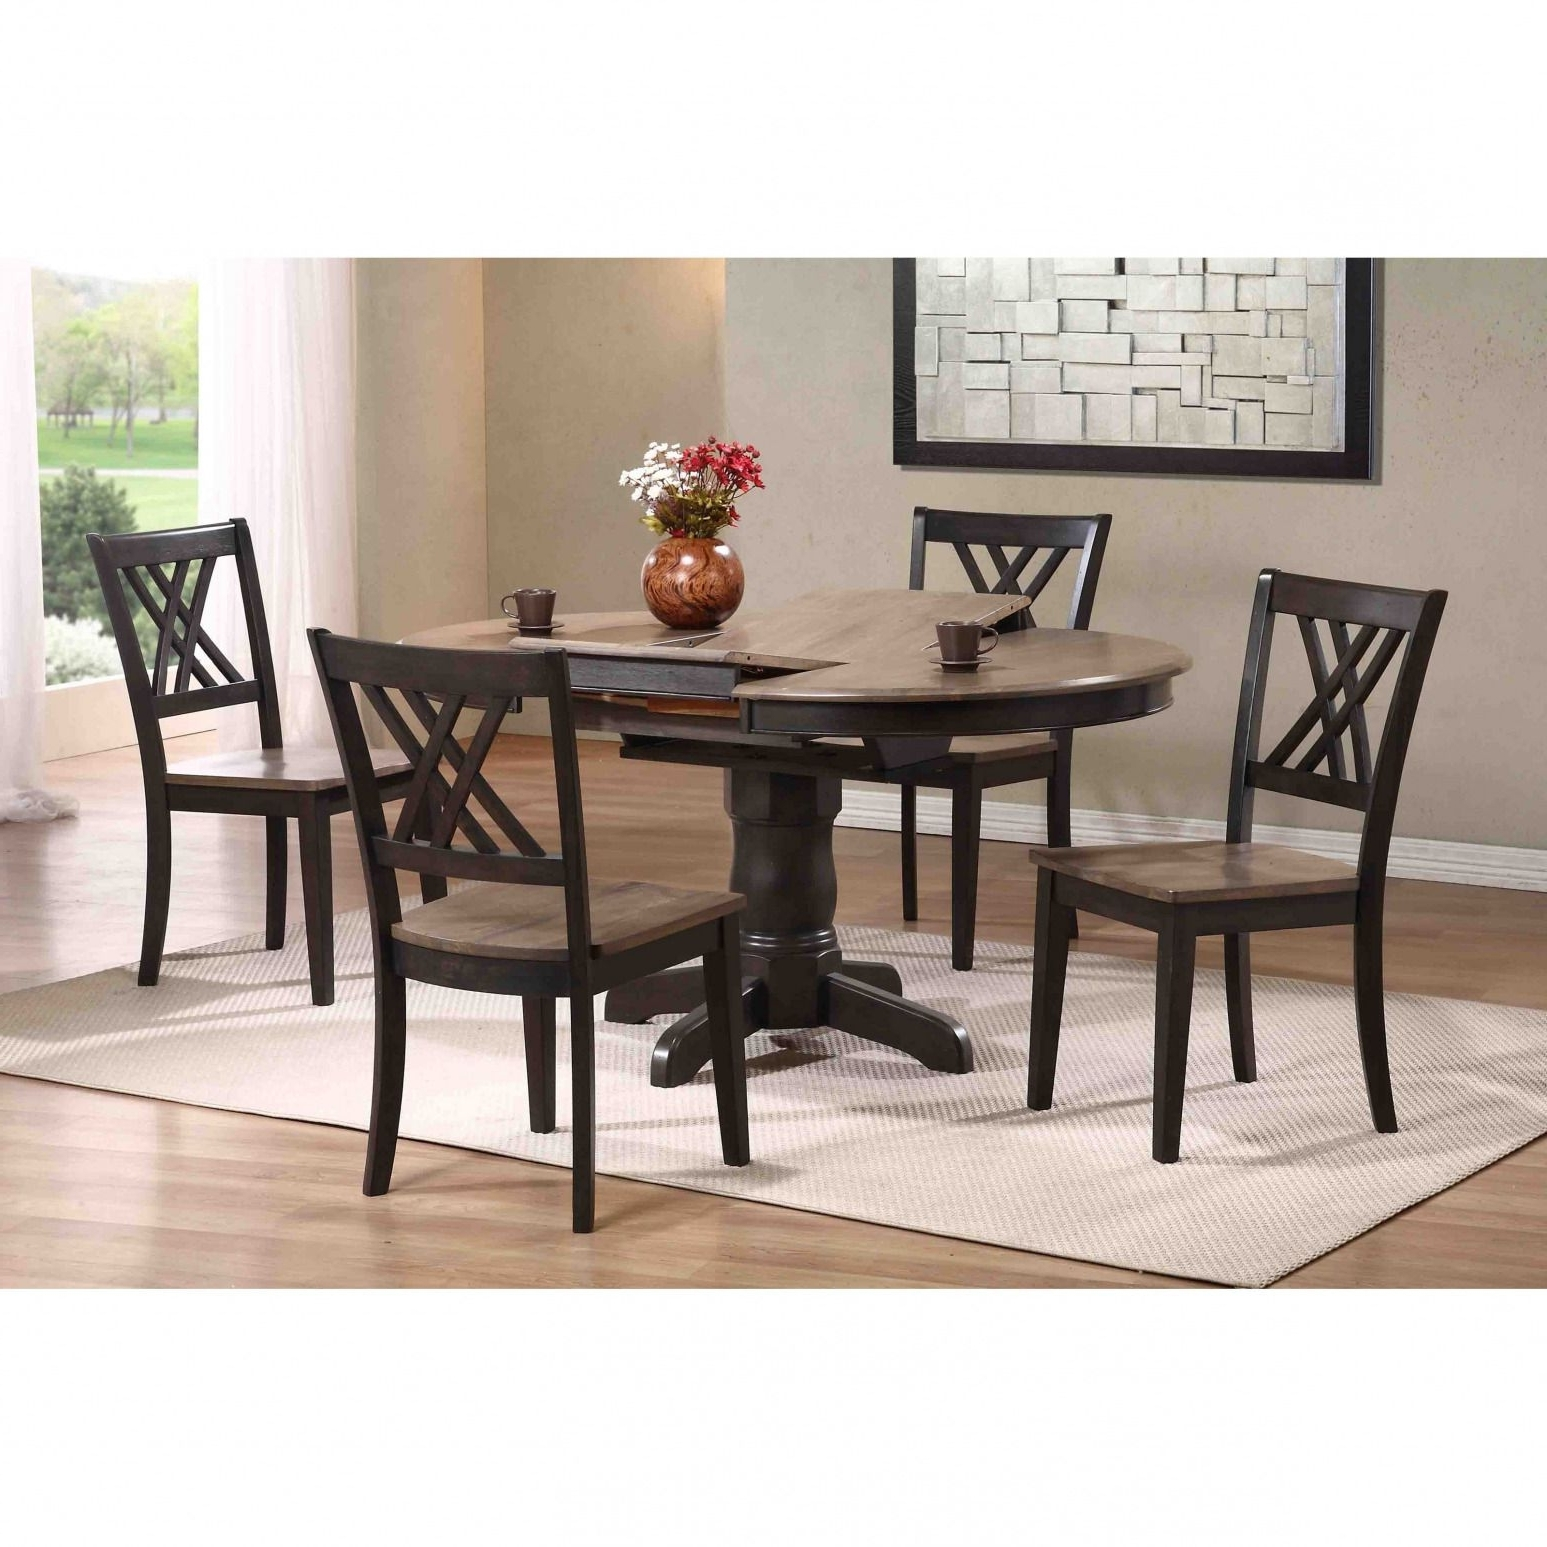 Well Liked Round 6 Person Dining Tables Throughout 100+ Round 6 Person Dining Table – Best Office Furniture Check More (View 5 of 25)